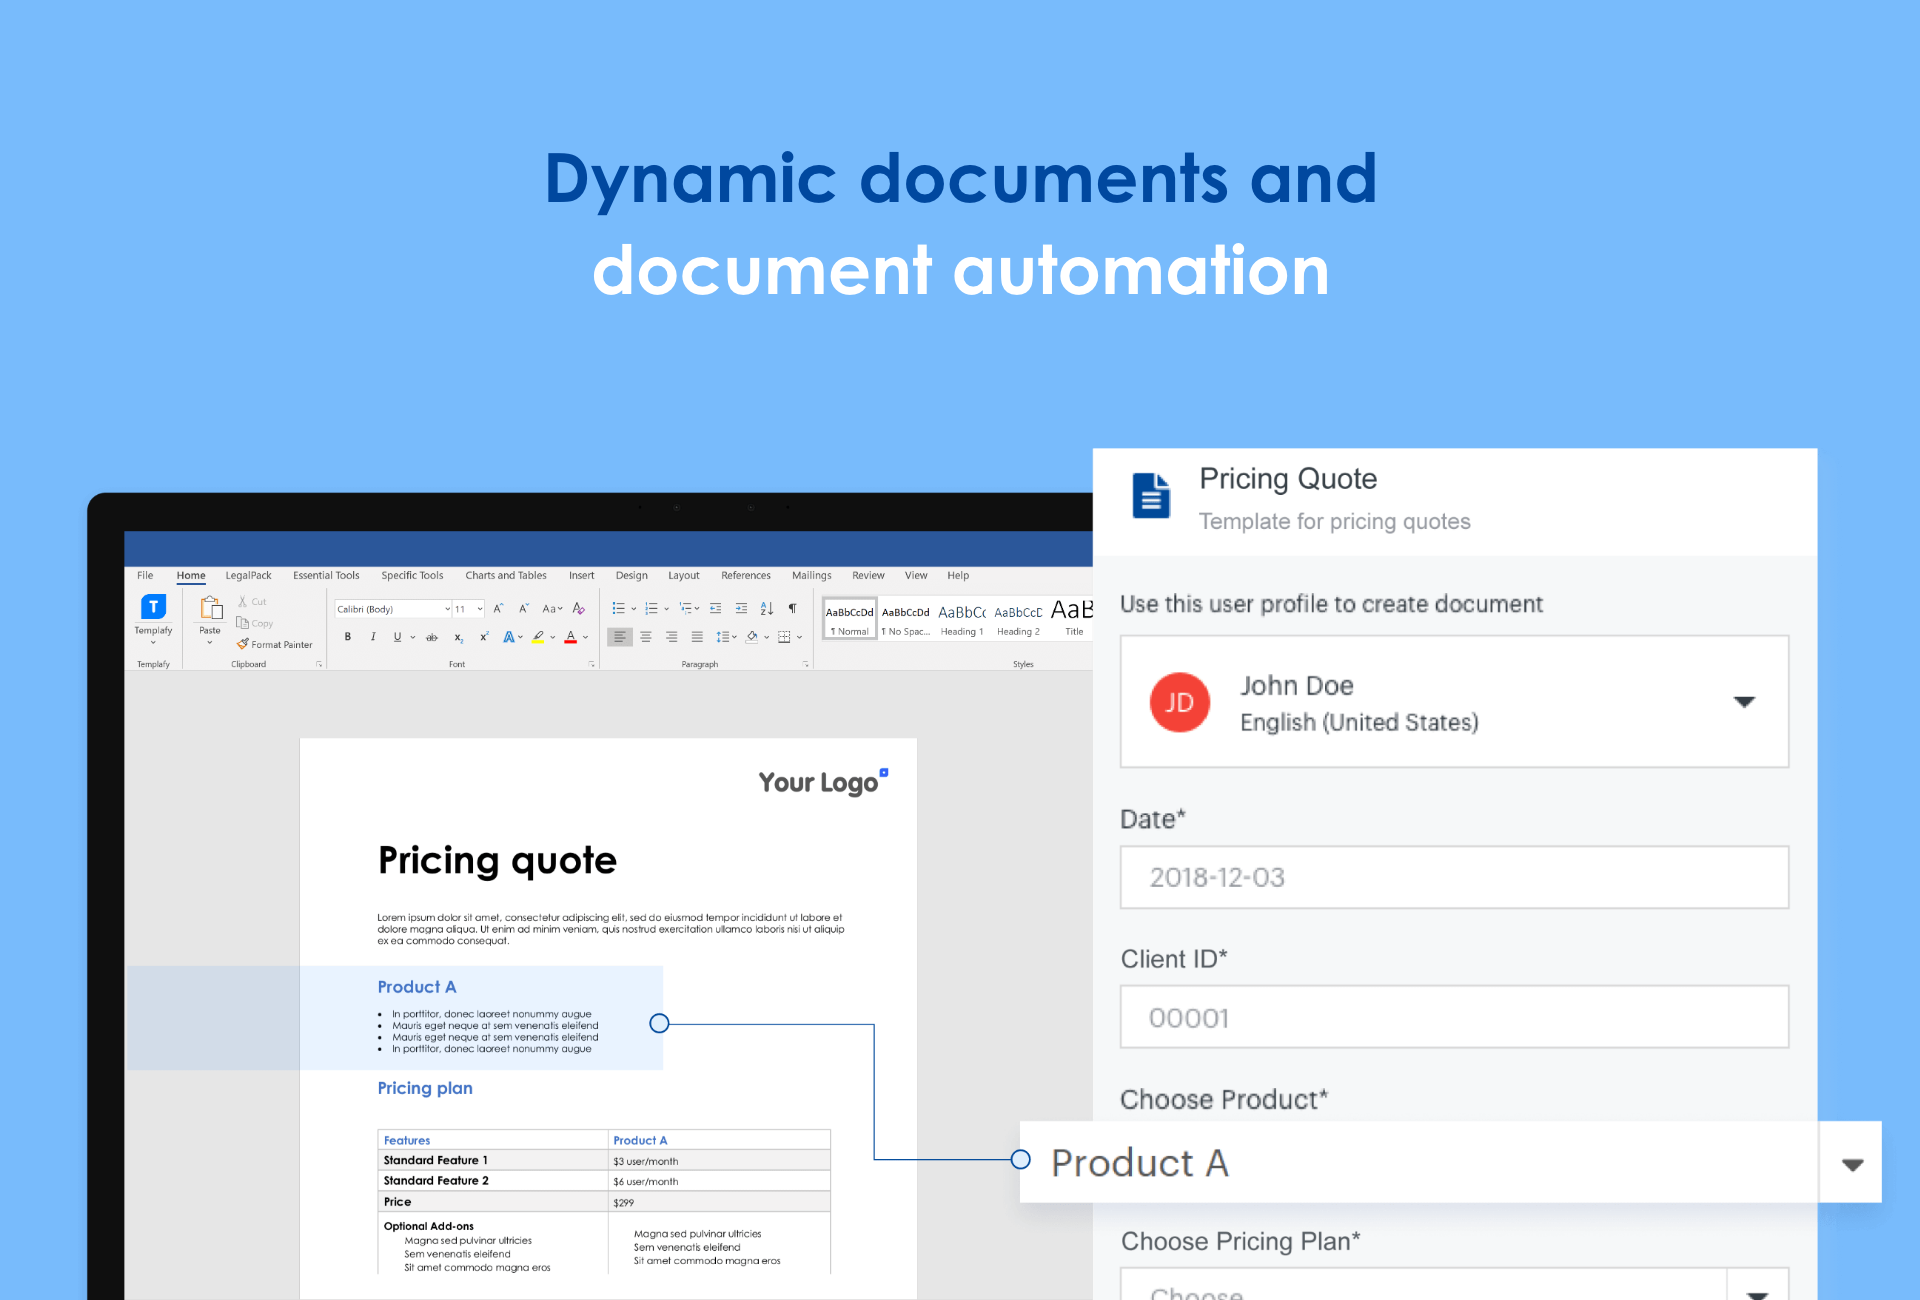 Automate compliance into your business documents using a smart template that auto-populates using company-approved materials only.